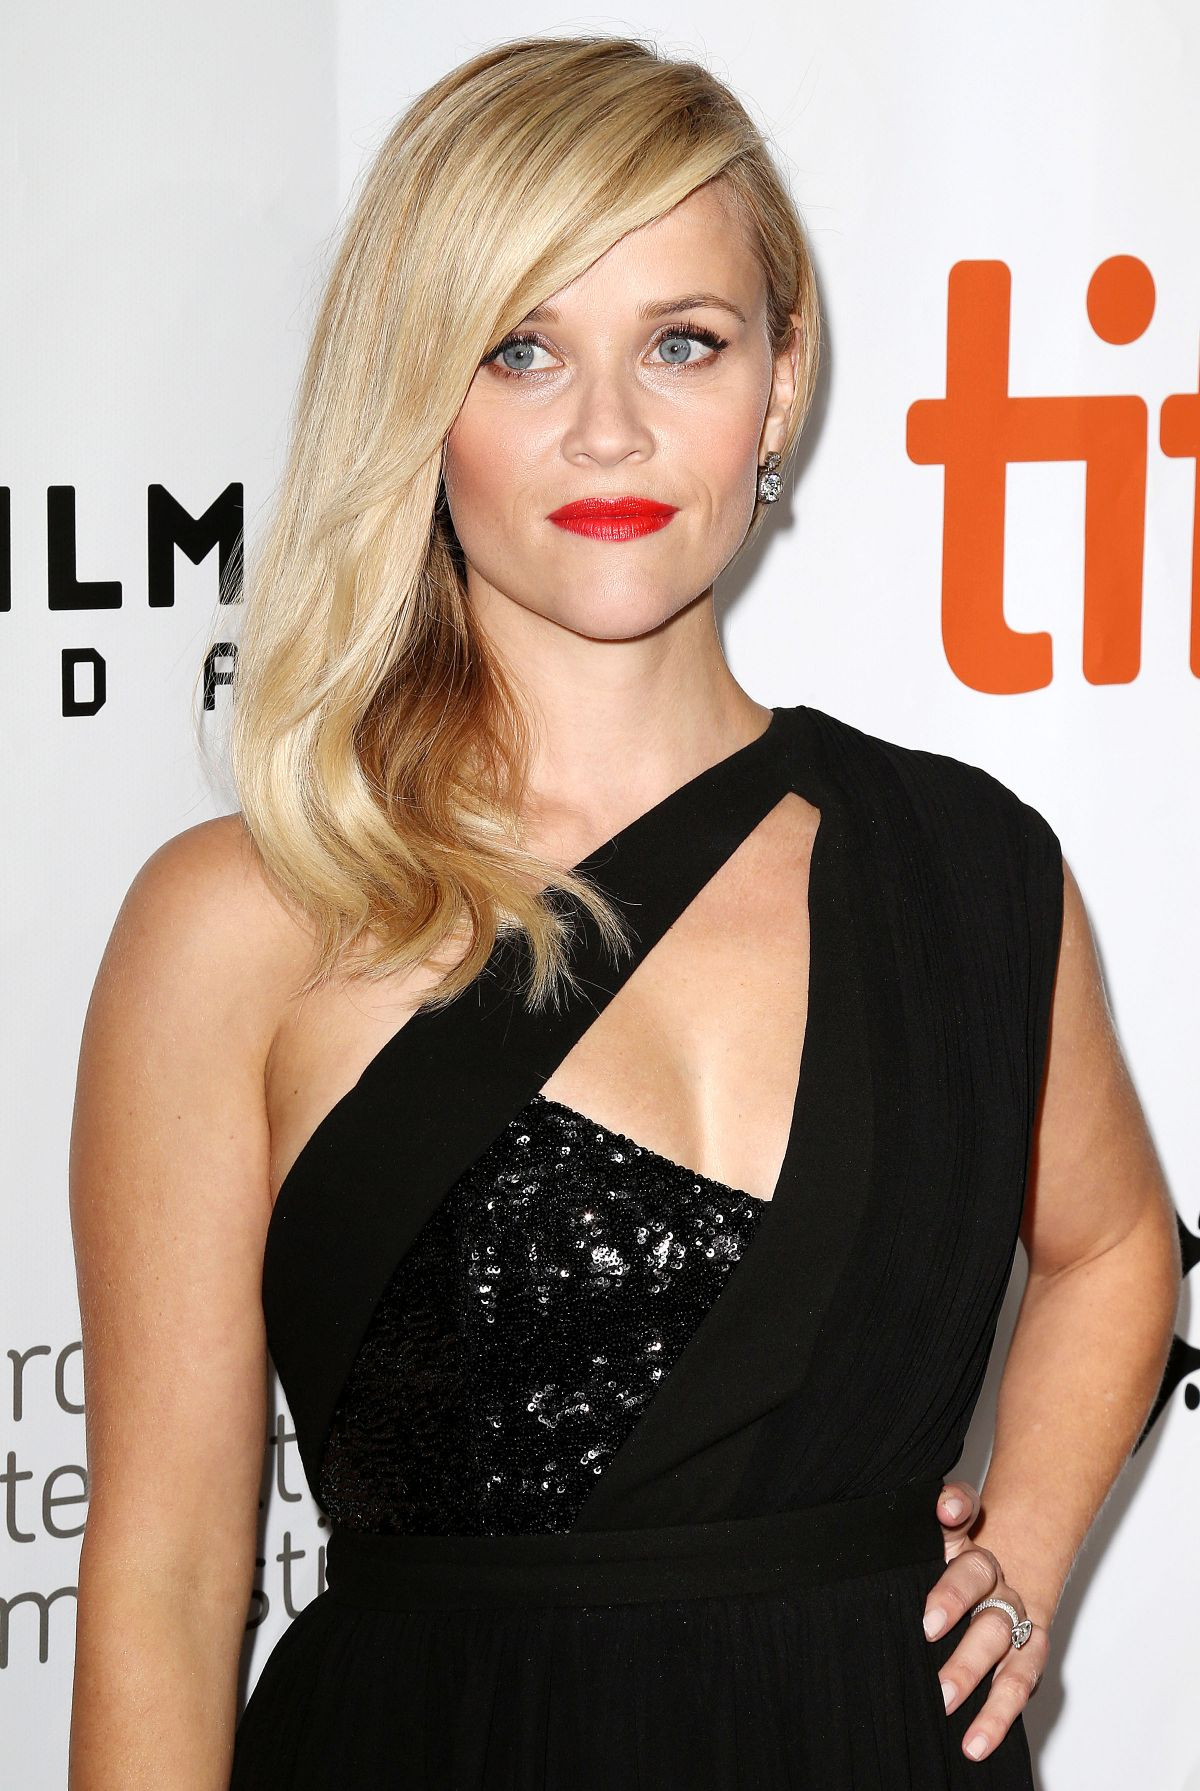 REESE WITHERSPOON at Wild Premiere in Toronto - HawtCelebs ...